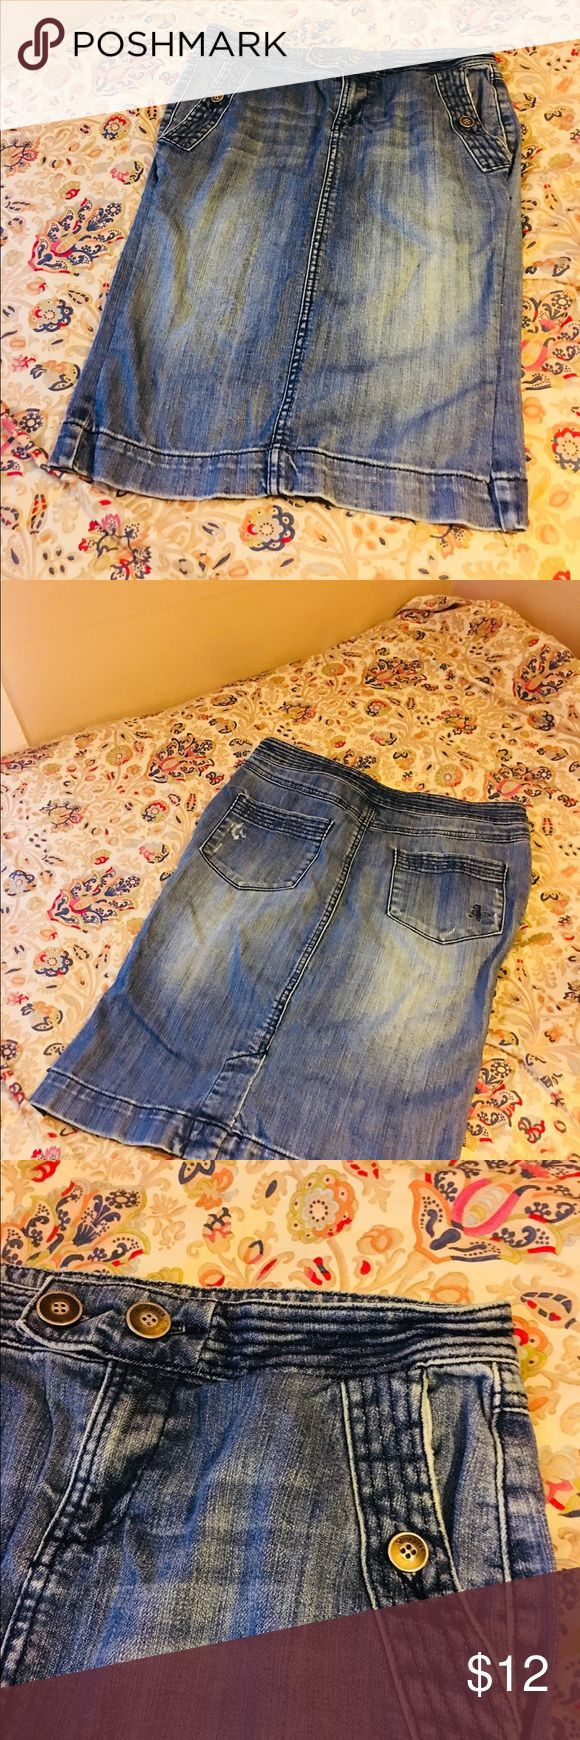 Spoon Jeans Distressed Jean Skirt Size 5 Spoon Jeans Distressed Jean Skirt Size 5 Stretchy Jean Waist approx. 16inches  Length a little over 22 inches Spoon Jeans Skirts Midi